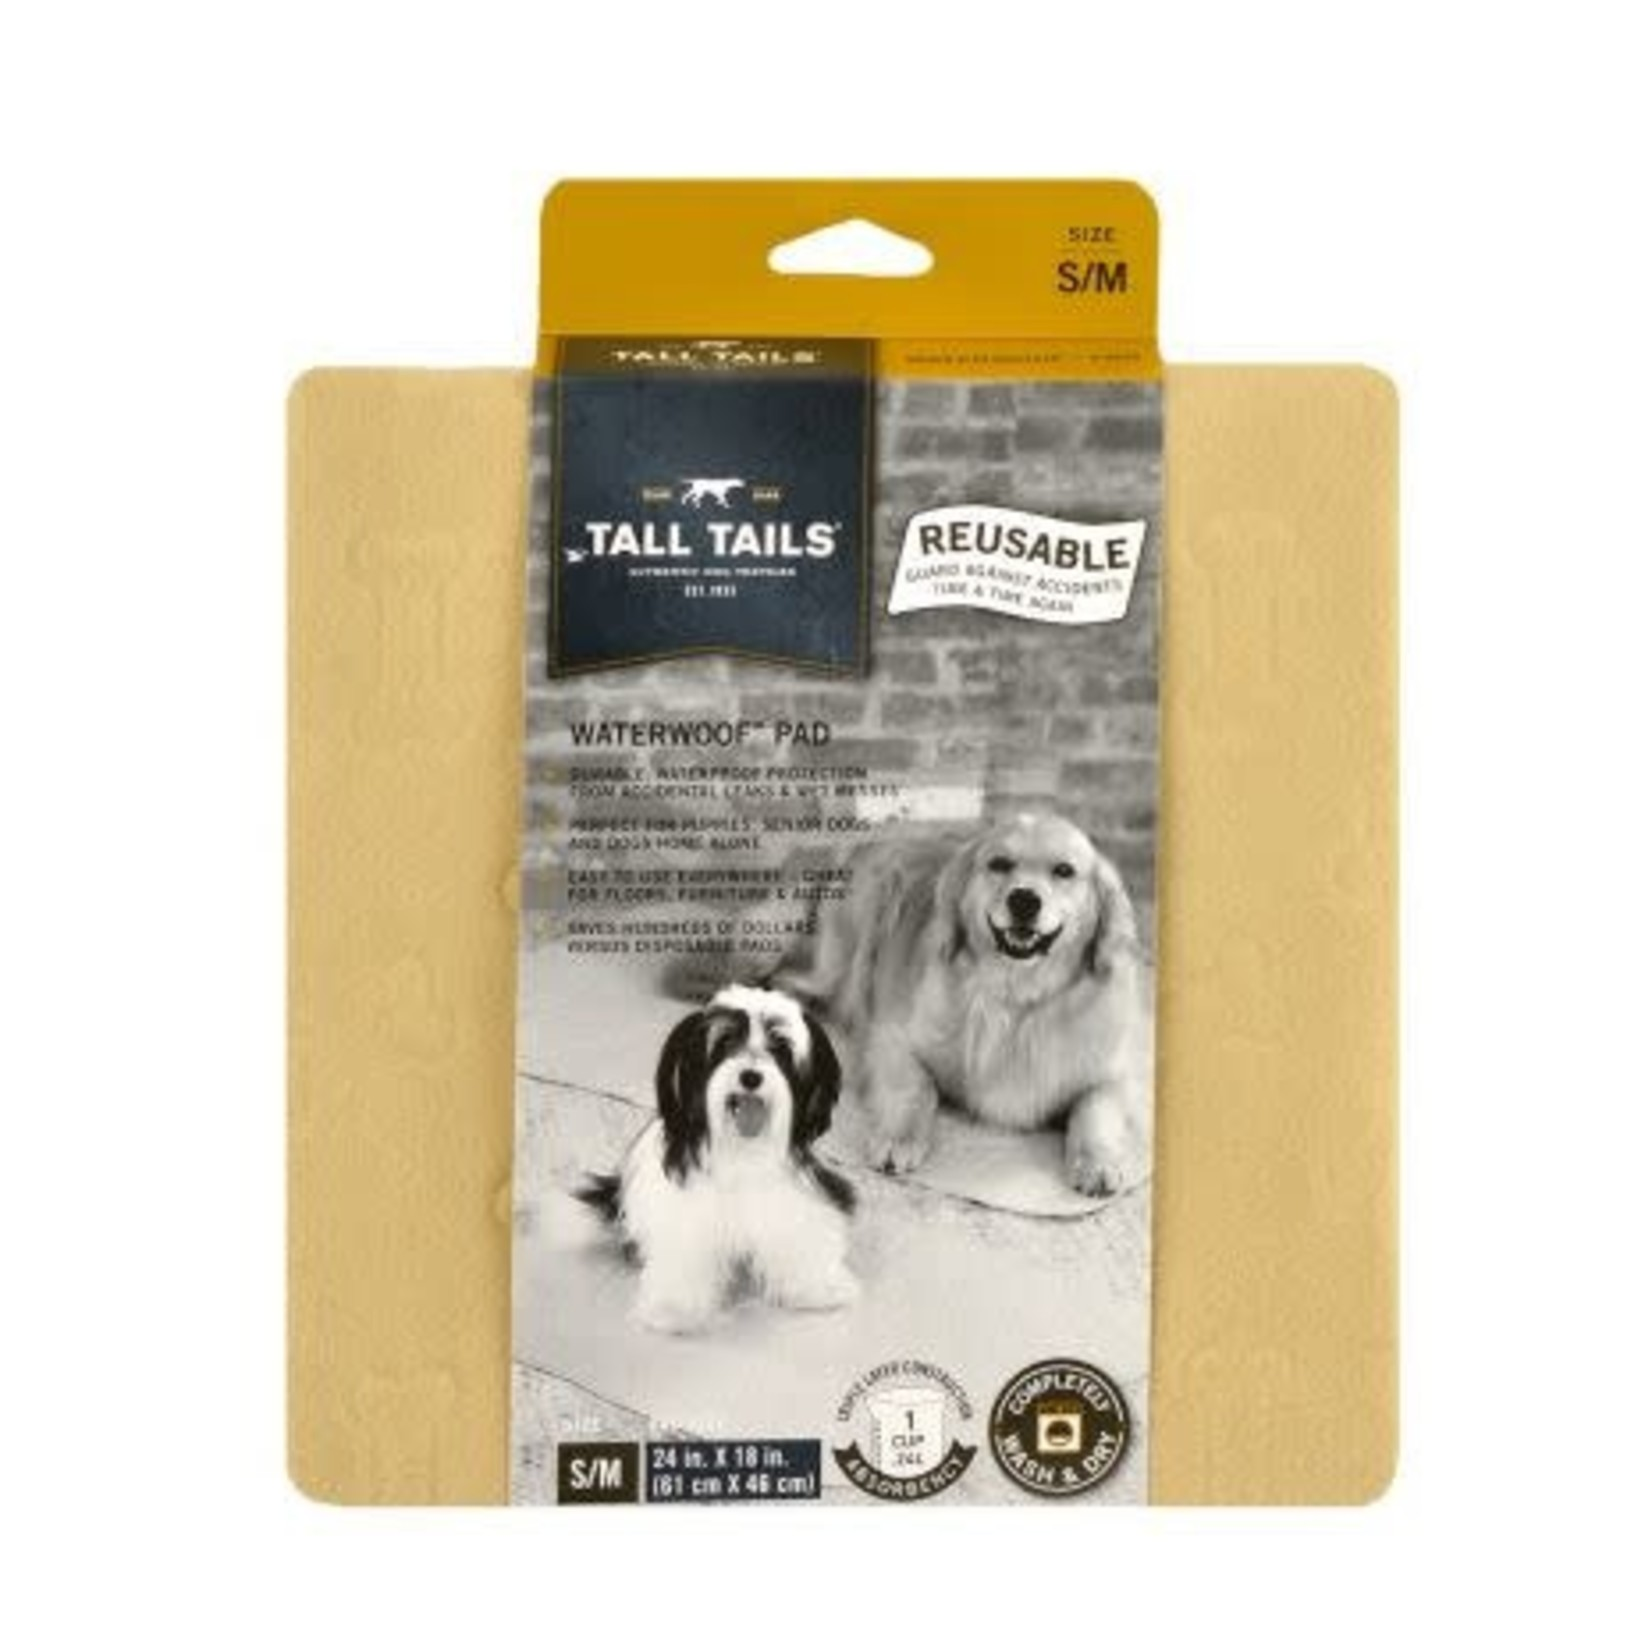 Tall Tails Tall Tails Waterproof Pad Small/Medium